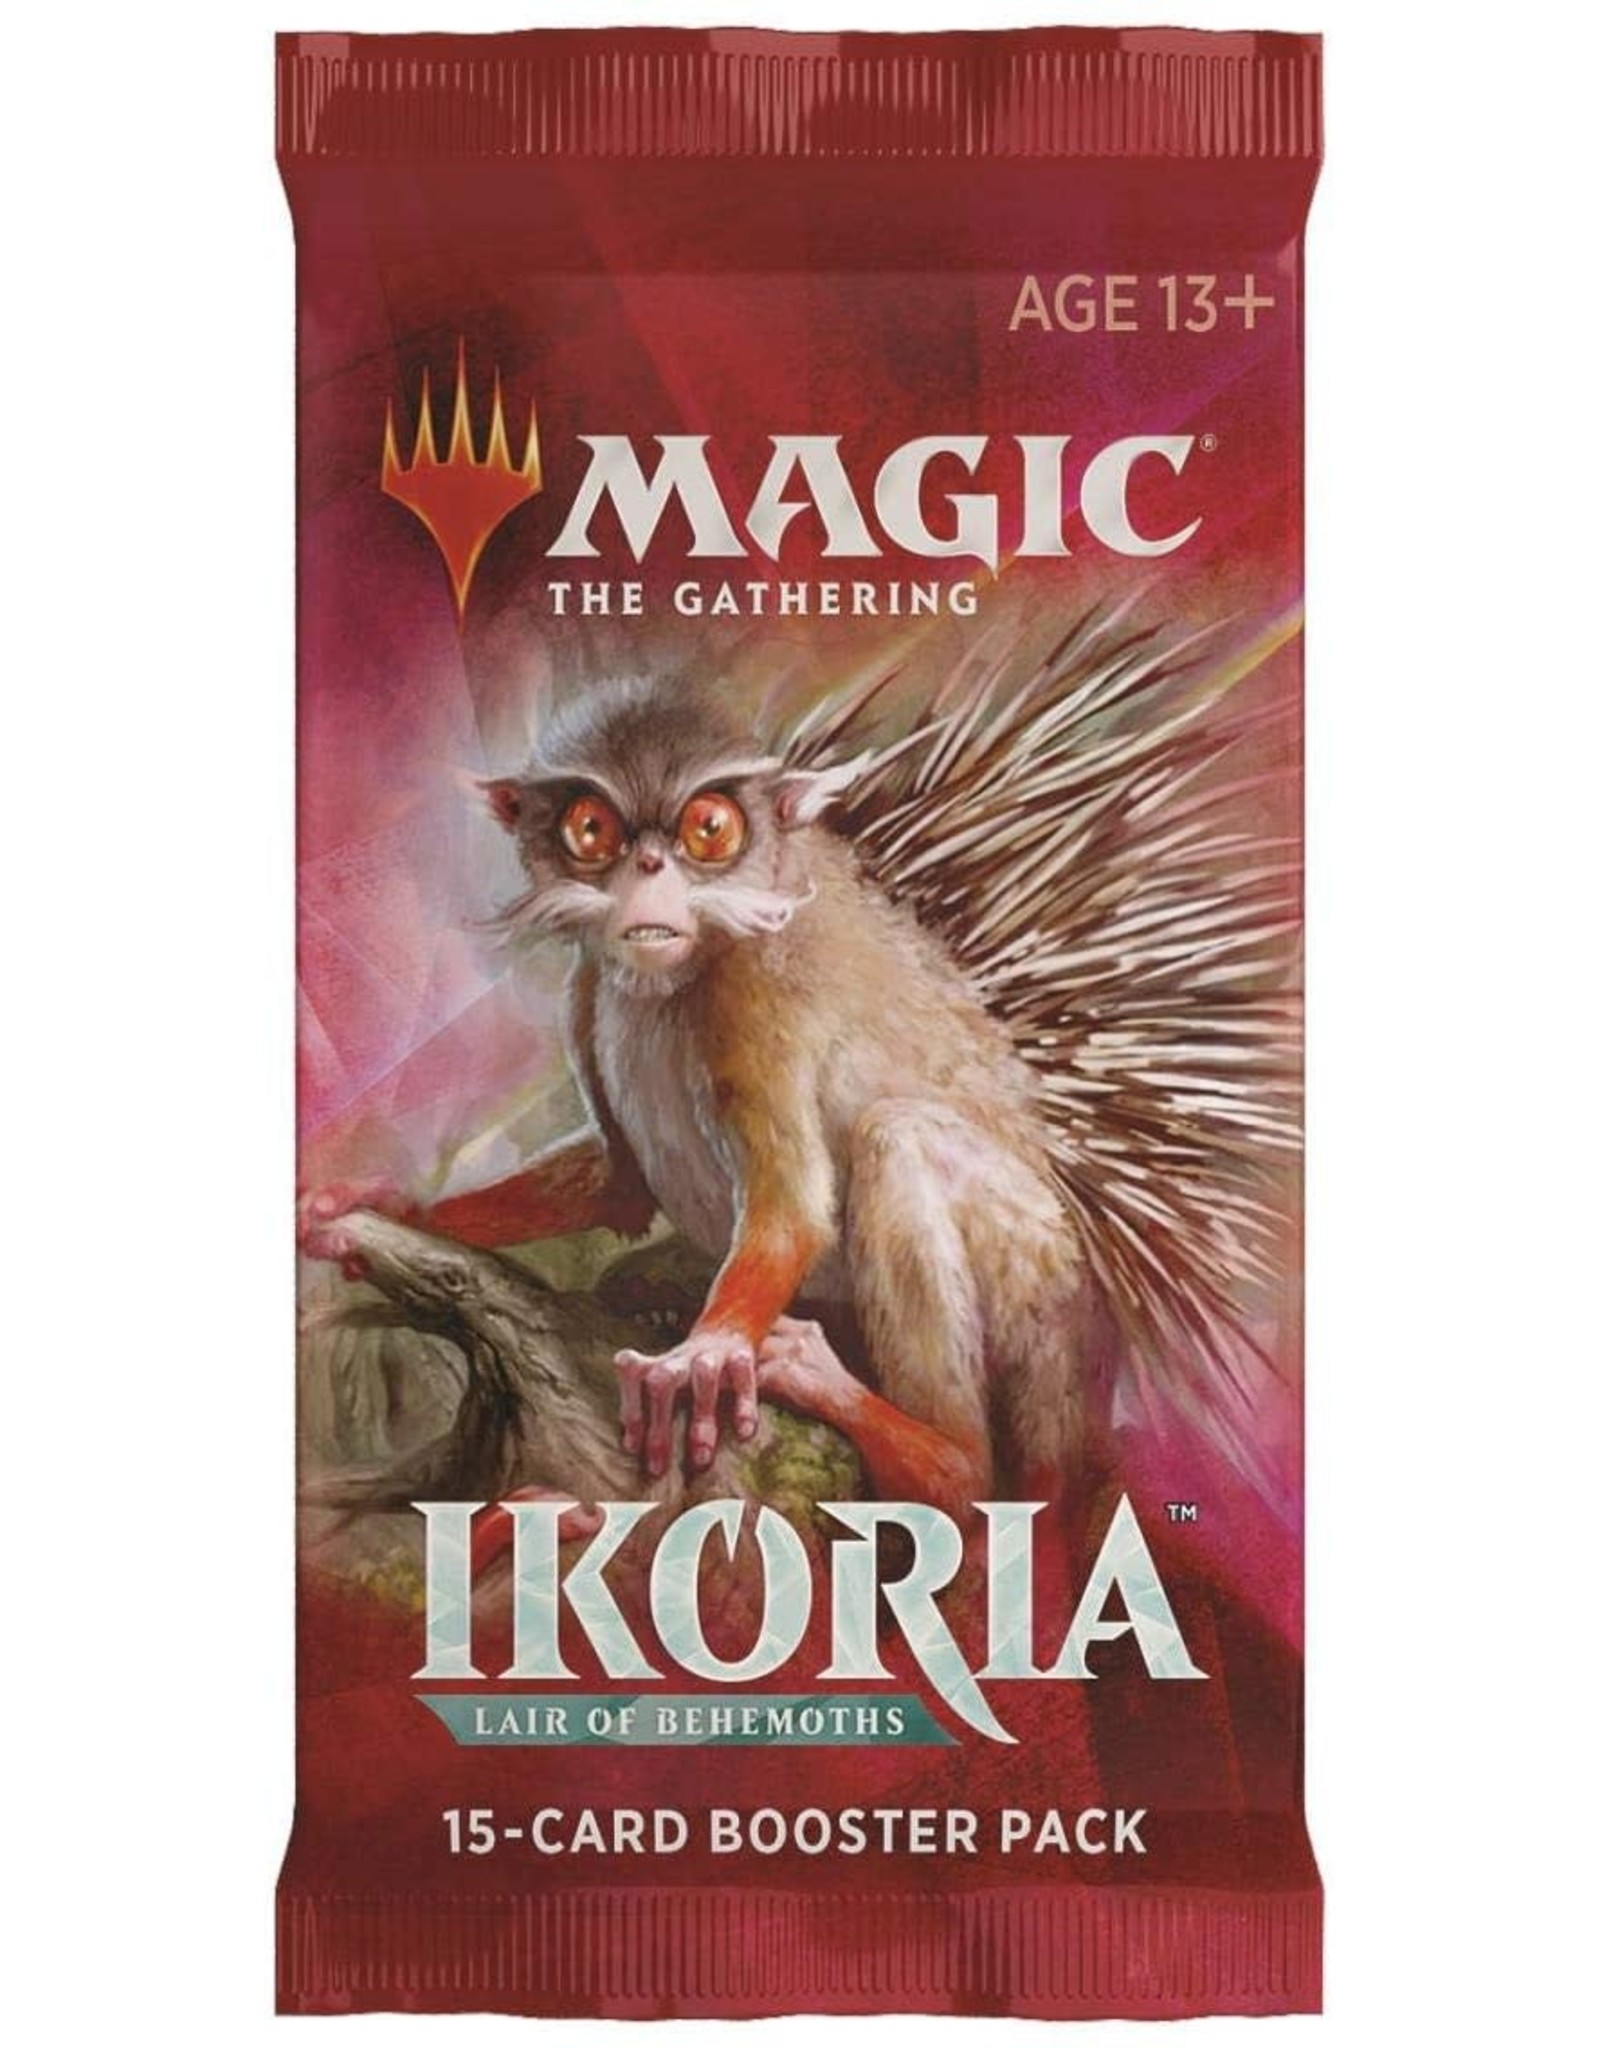 Wizards of the Coast Ikoria Booster Pack